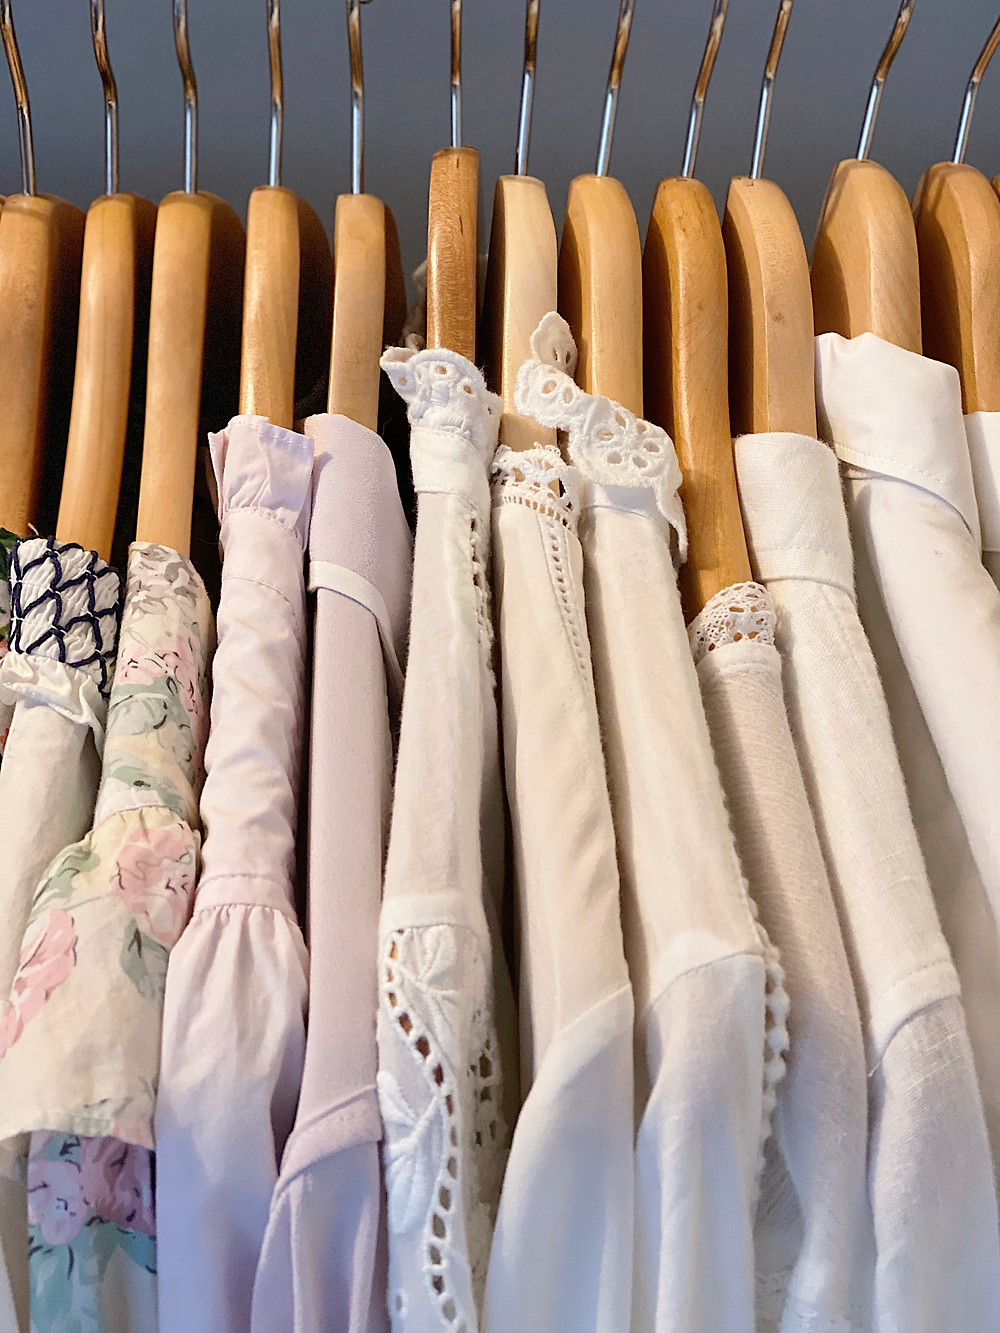 blouses hung in a closet